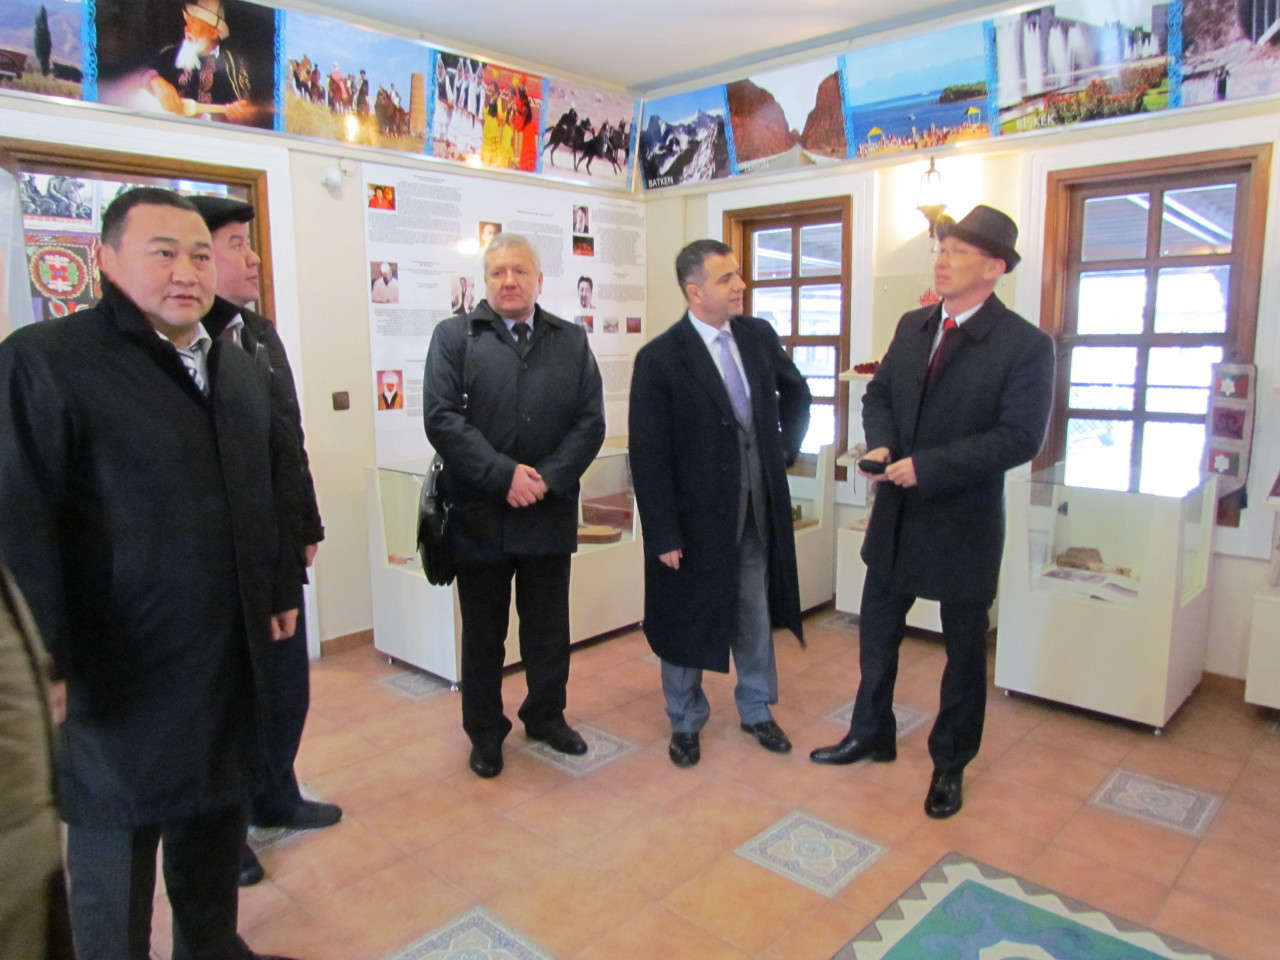 Visit from the Deputy Minister Chakiev to Culture Co. Galeri - 12. Resim